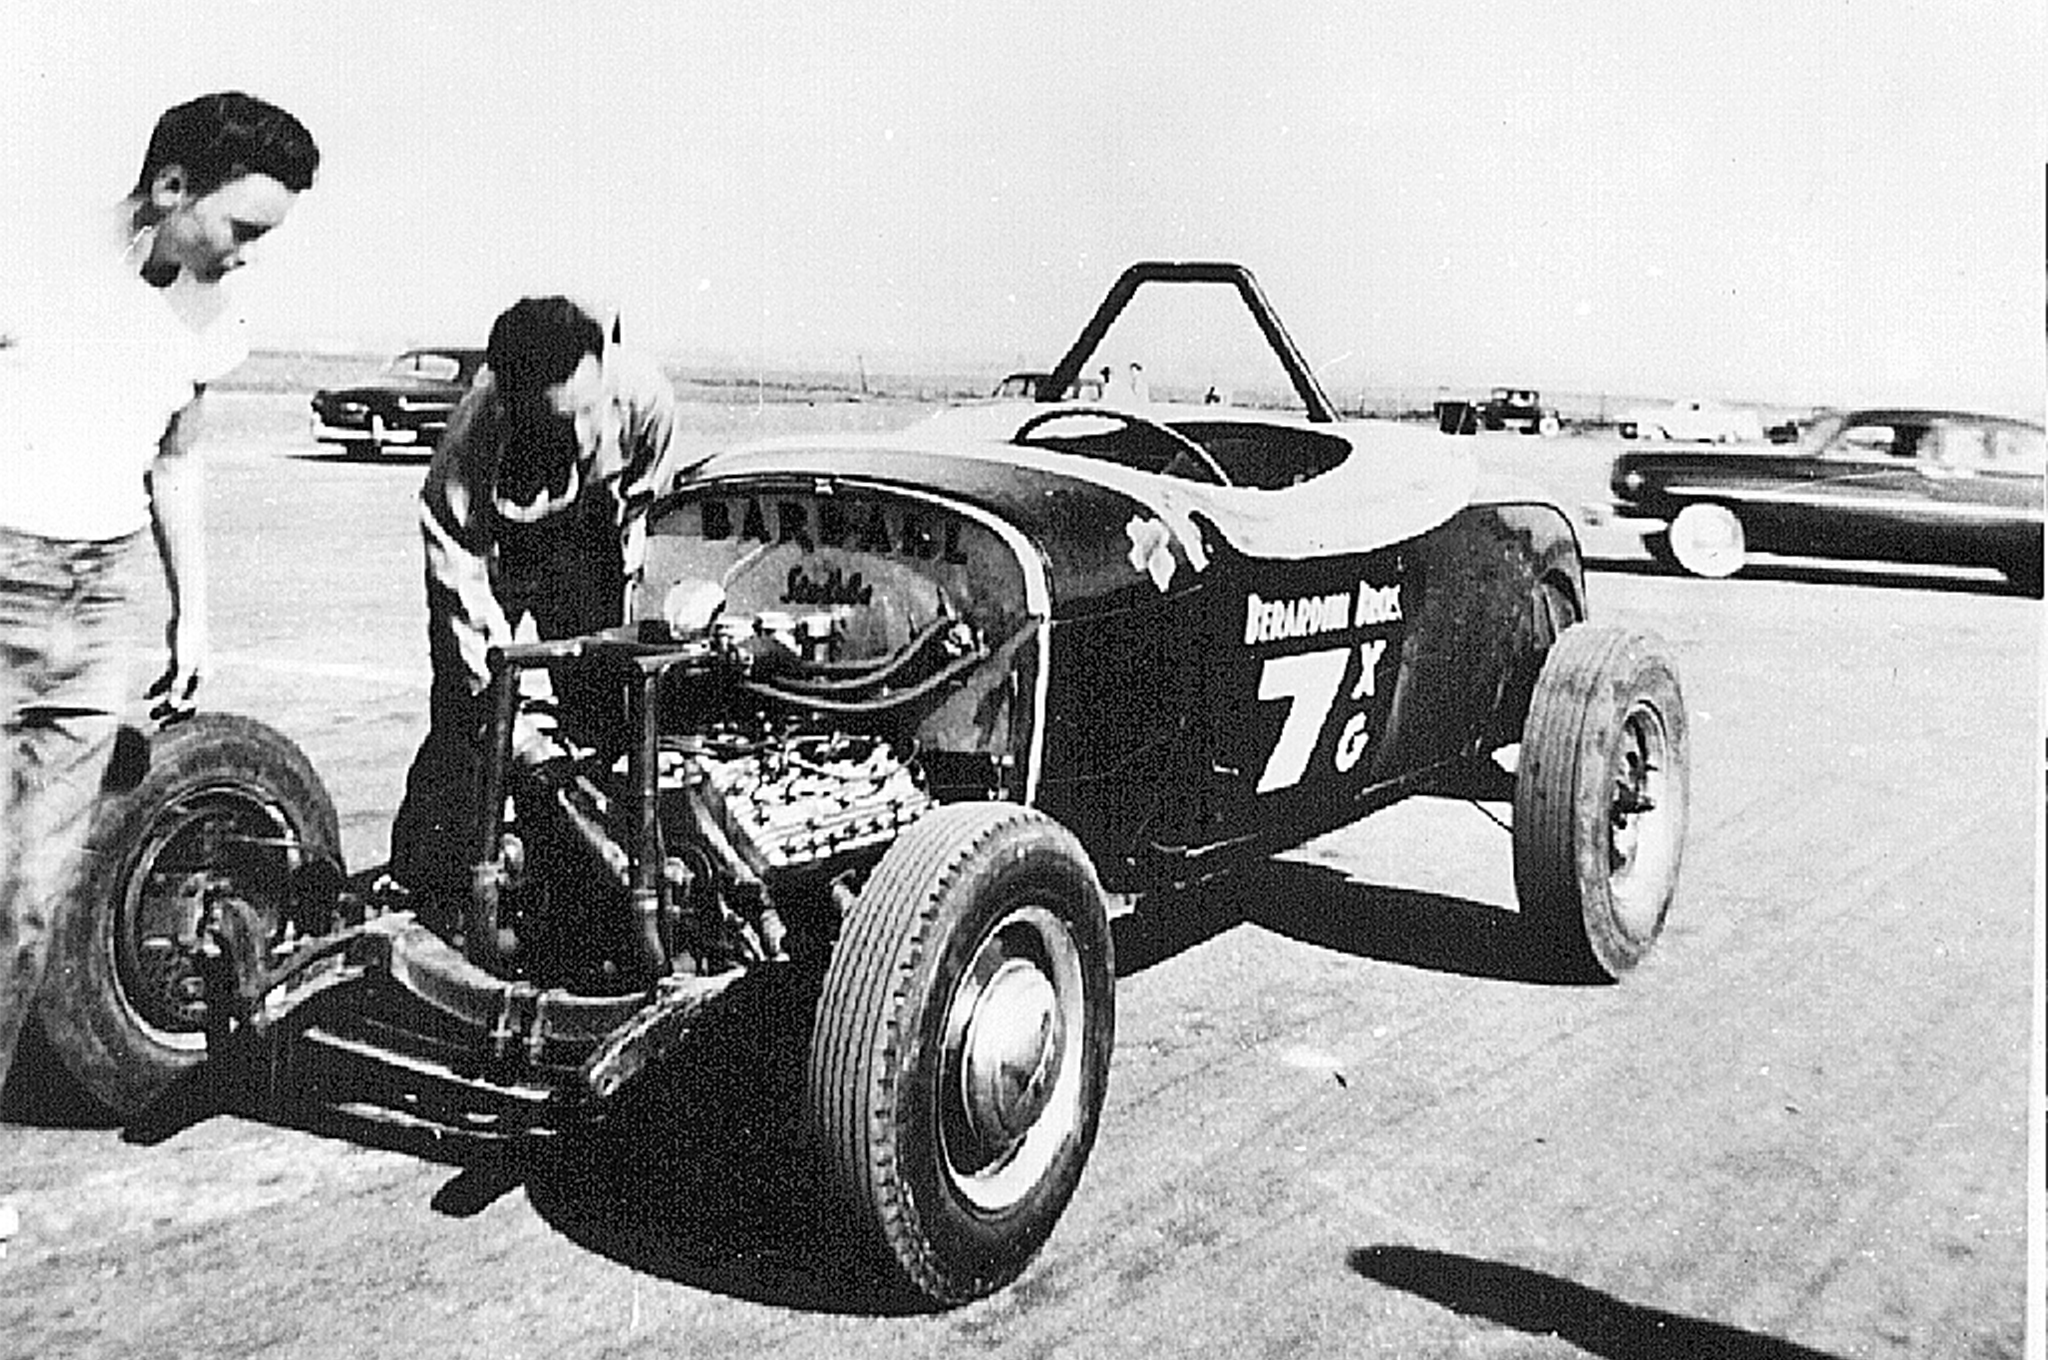 Another Leslie Long photo courtesy of the Berardini family shows Tony making some race-day adjustments to the roadster's flathead.